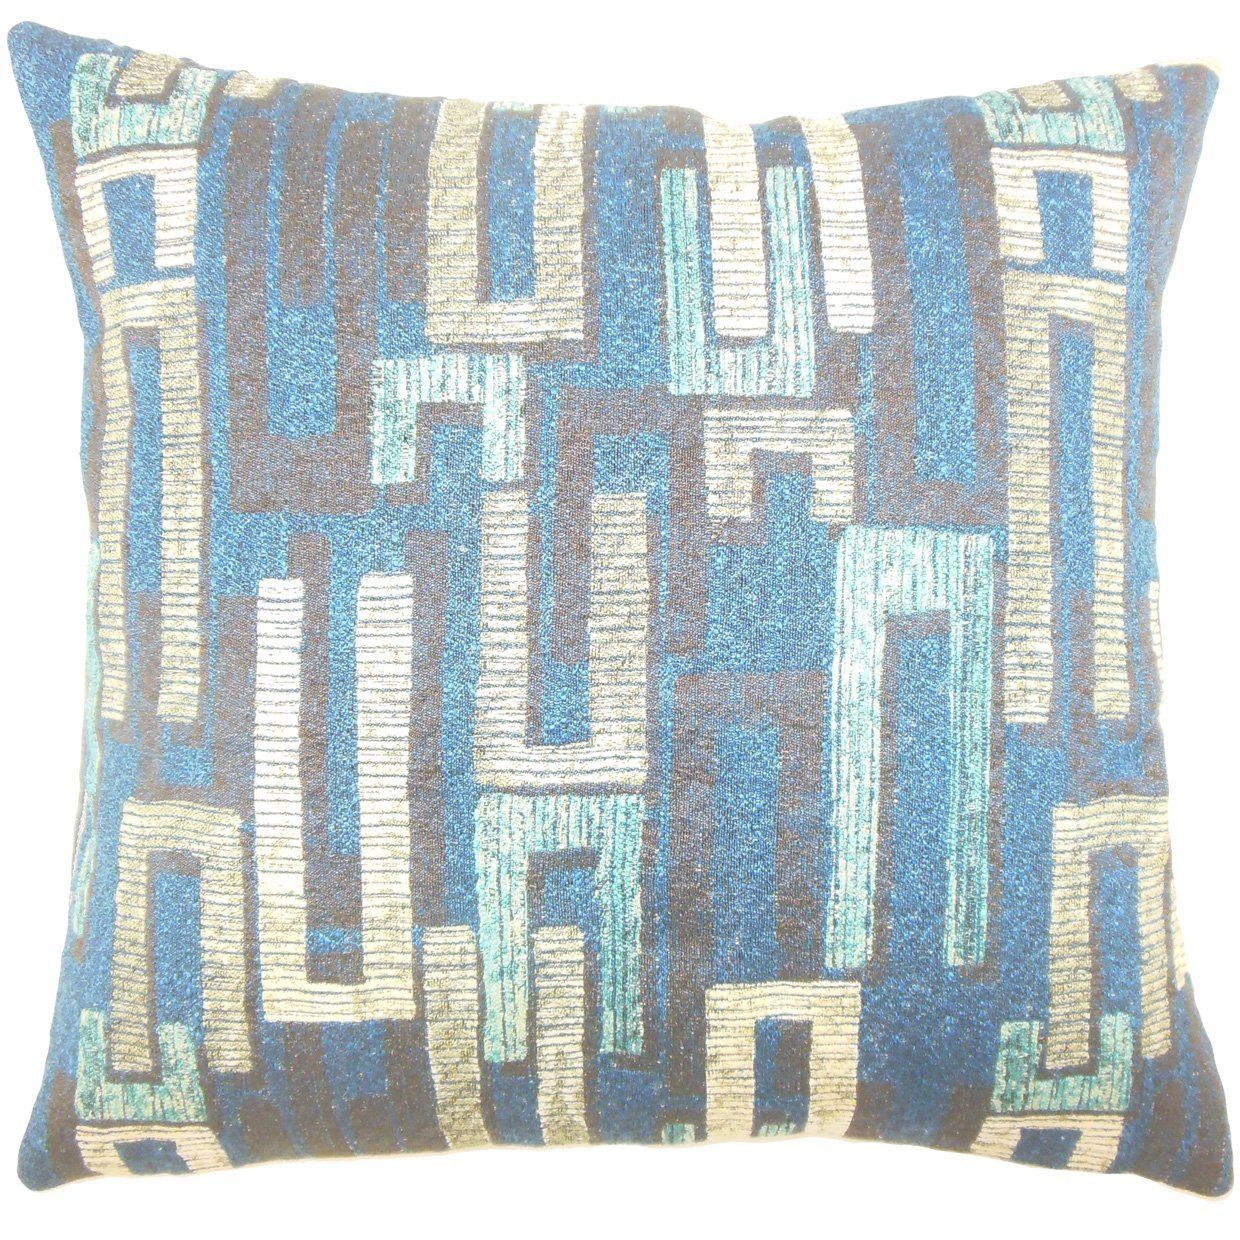 The Pillow Collection Xola Geometric Bedding Sham Sapphire Standard//20 x 26